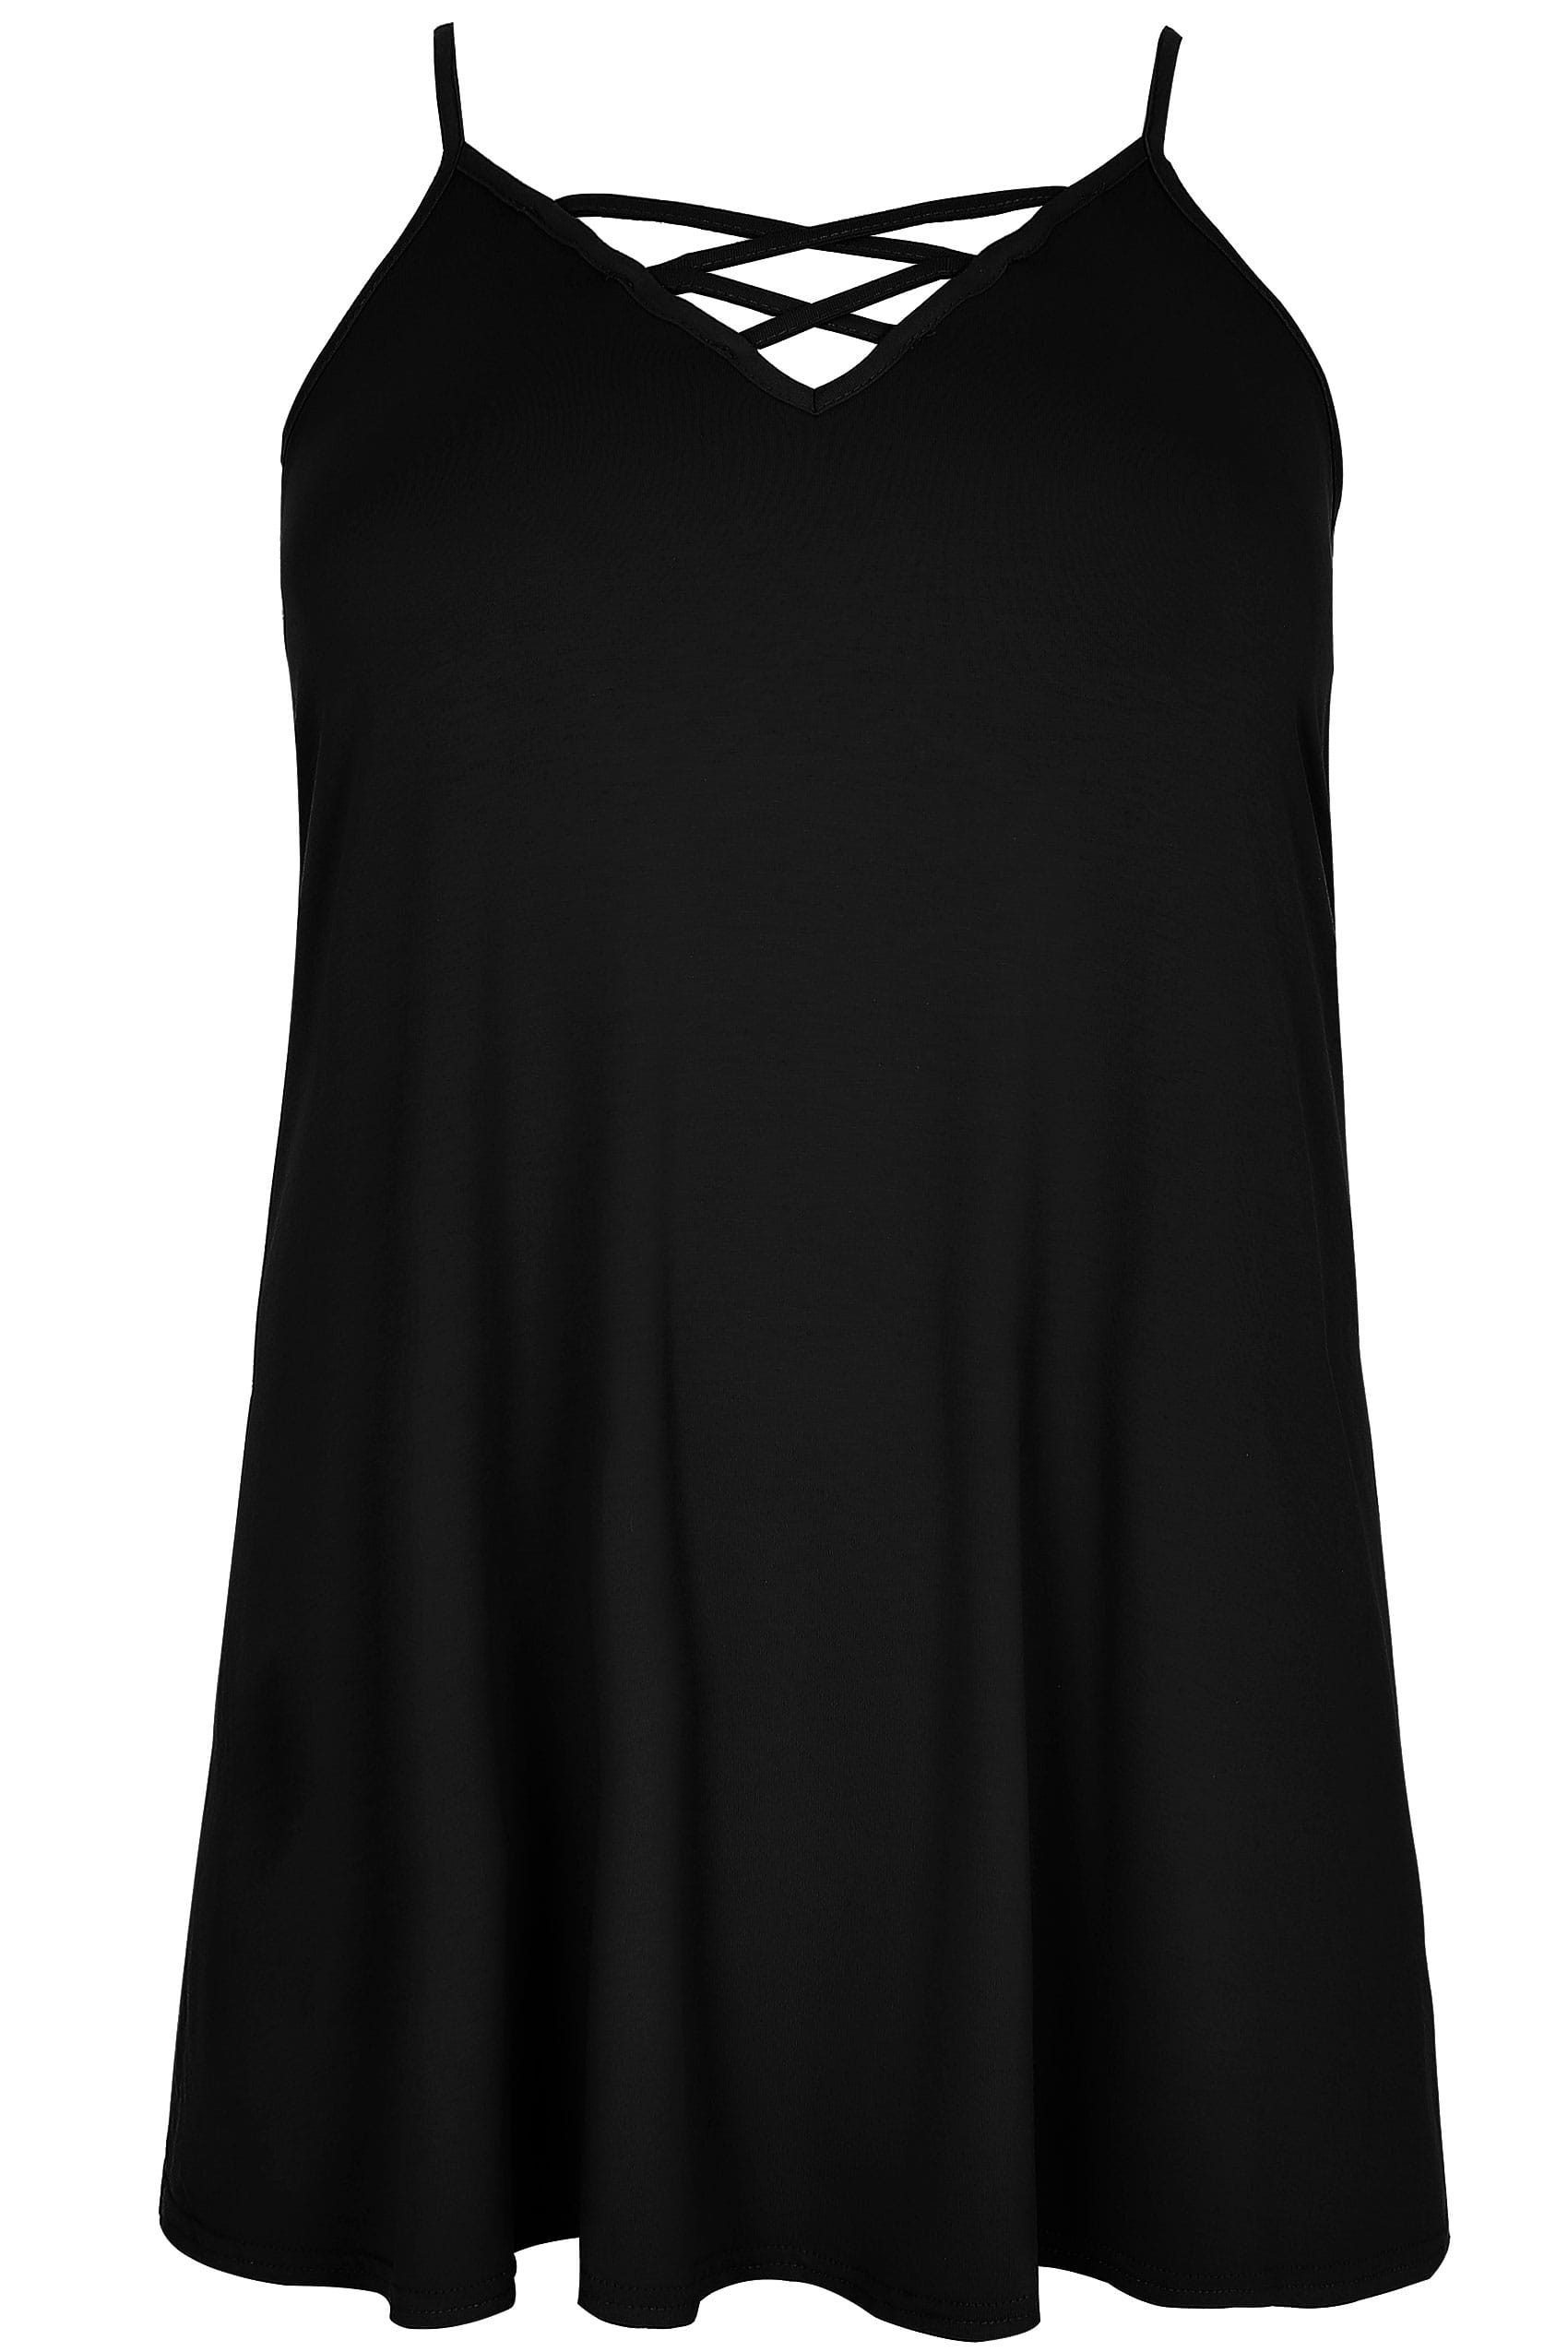 Black v neck vest top with cross front detail plus size for Vest top template